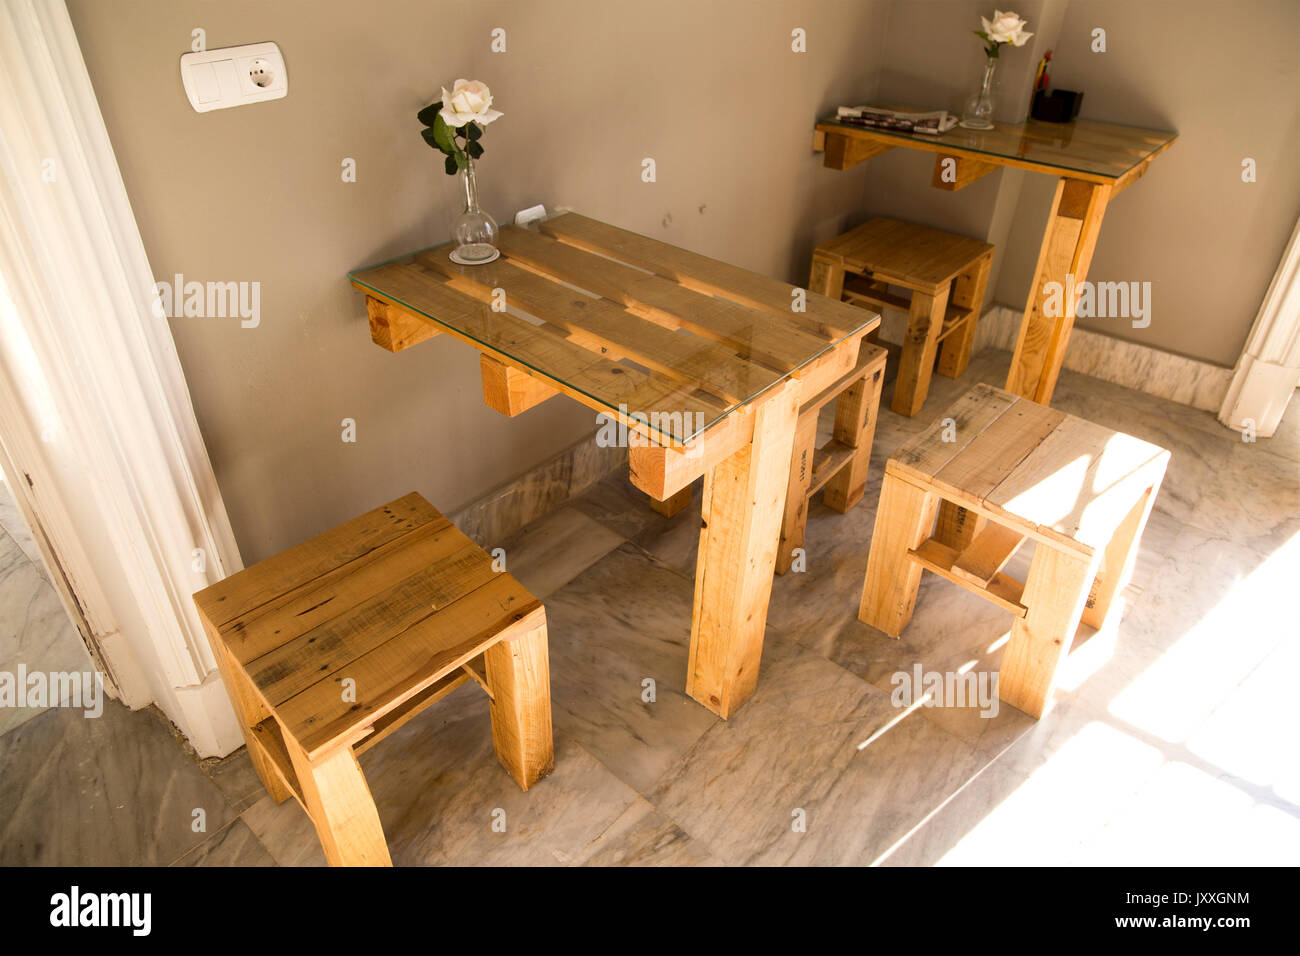 Hotel Bar Furniture Made From Wooden Pallets, Jerez De La Frontera, Spain    Stock